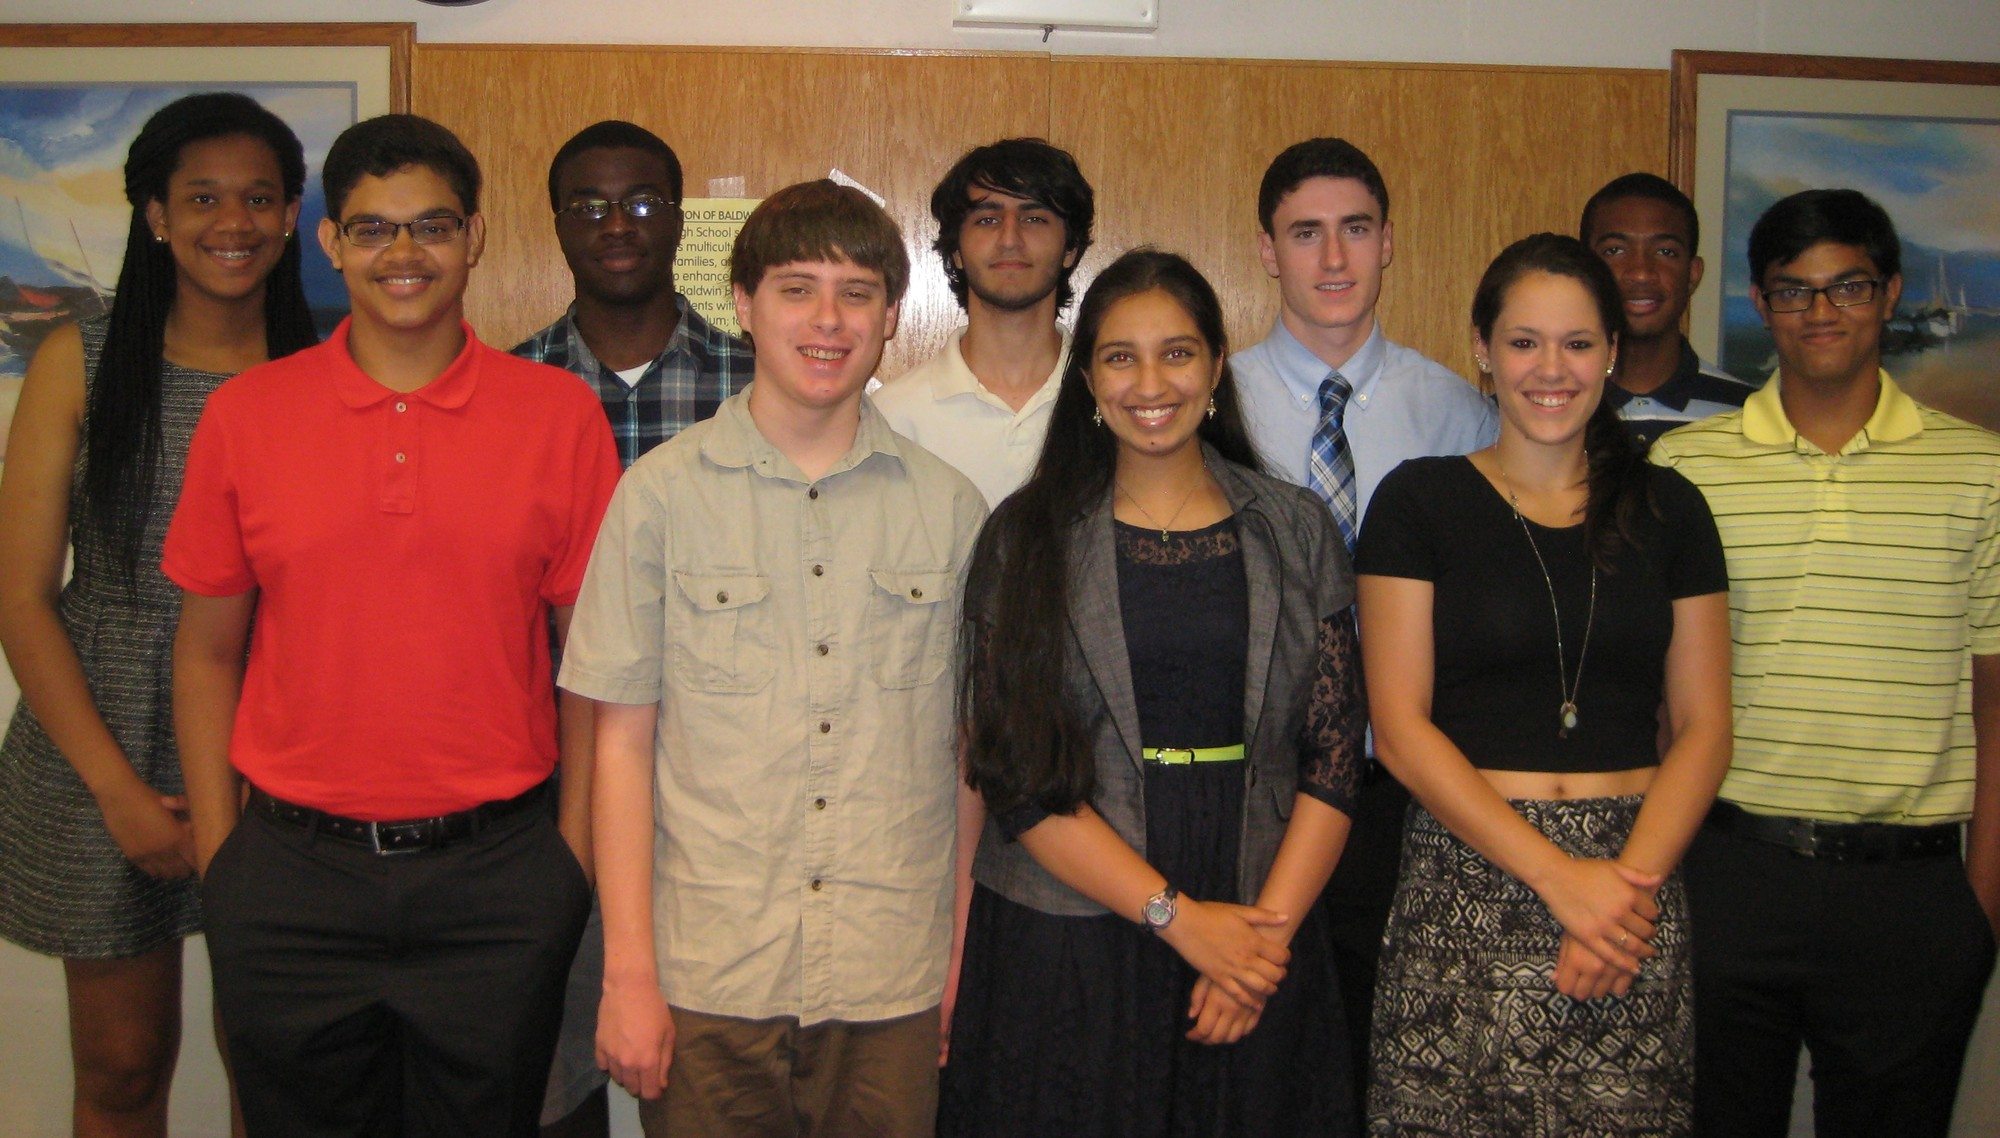 Baldwin High School's Top 10 academic seniors: front row from left are Vineet Vishwanath, Dylan Sammis, Harinee Nori, Michele Messina and Vkram Vishwanath. Back row from left are Valerie Achille, Richard Henry, Keyan Vakil, Bryan Saggese and Wesley Pennycooke.